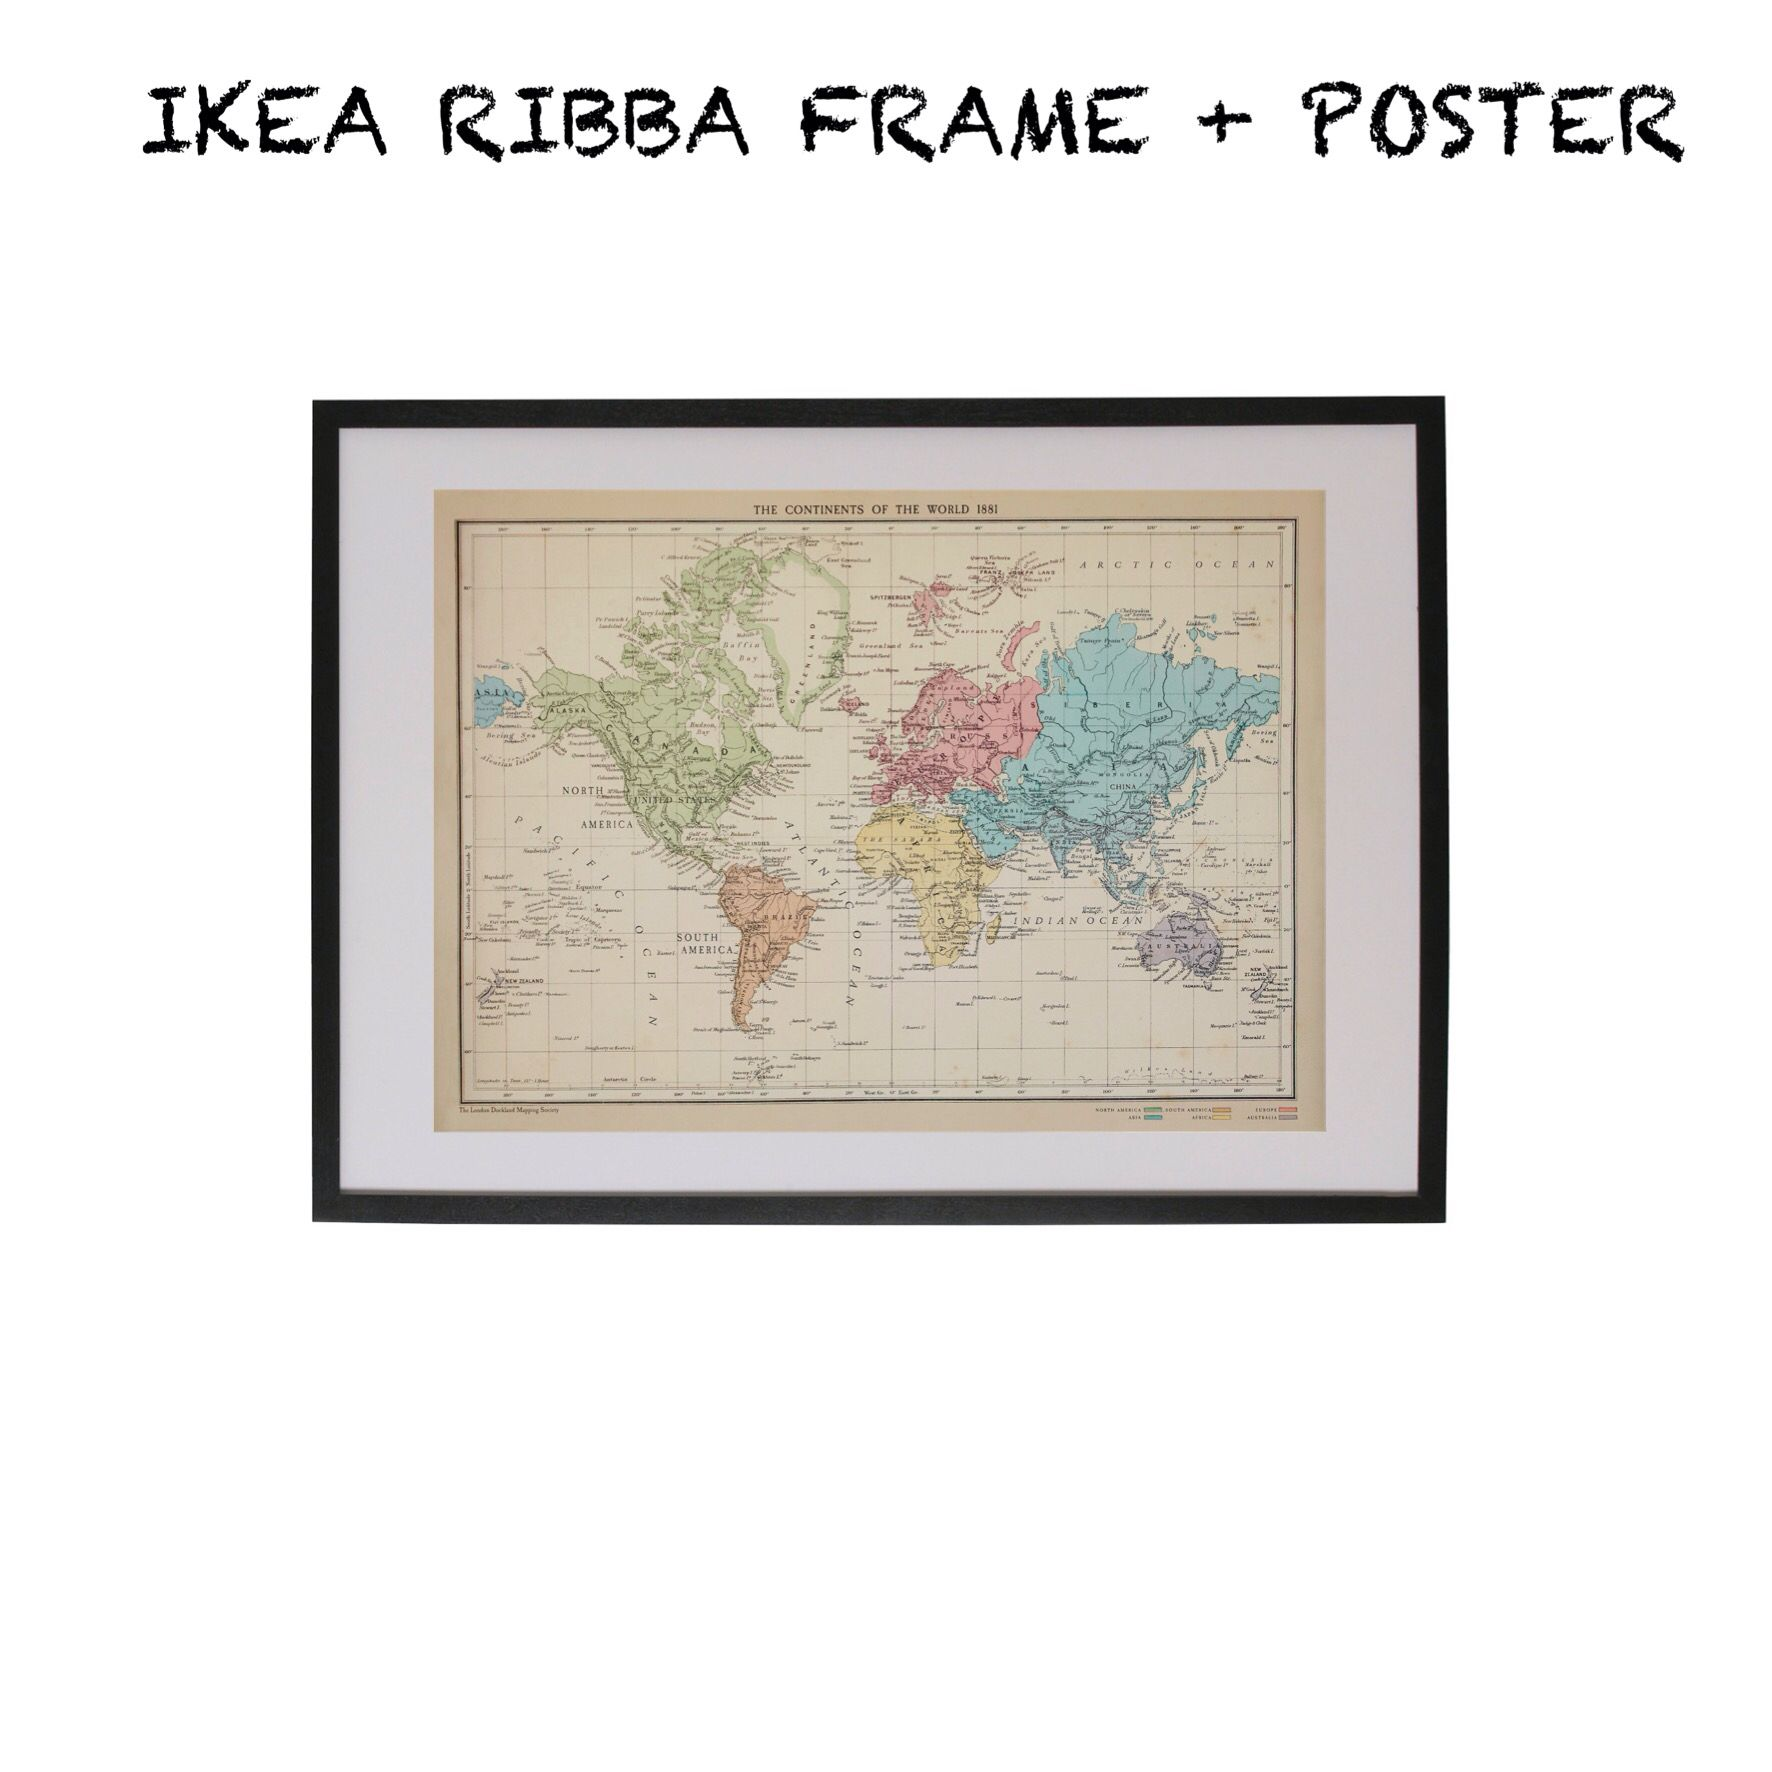 Ikea ribba frame world map poster decoraties pinterest ikea ribba frame world map poster gumiabroncs Choice Image